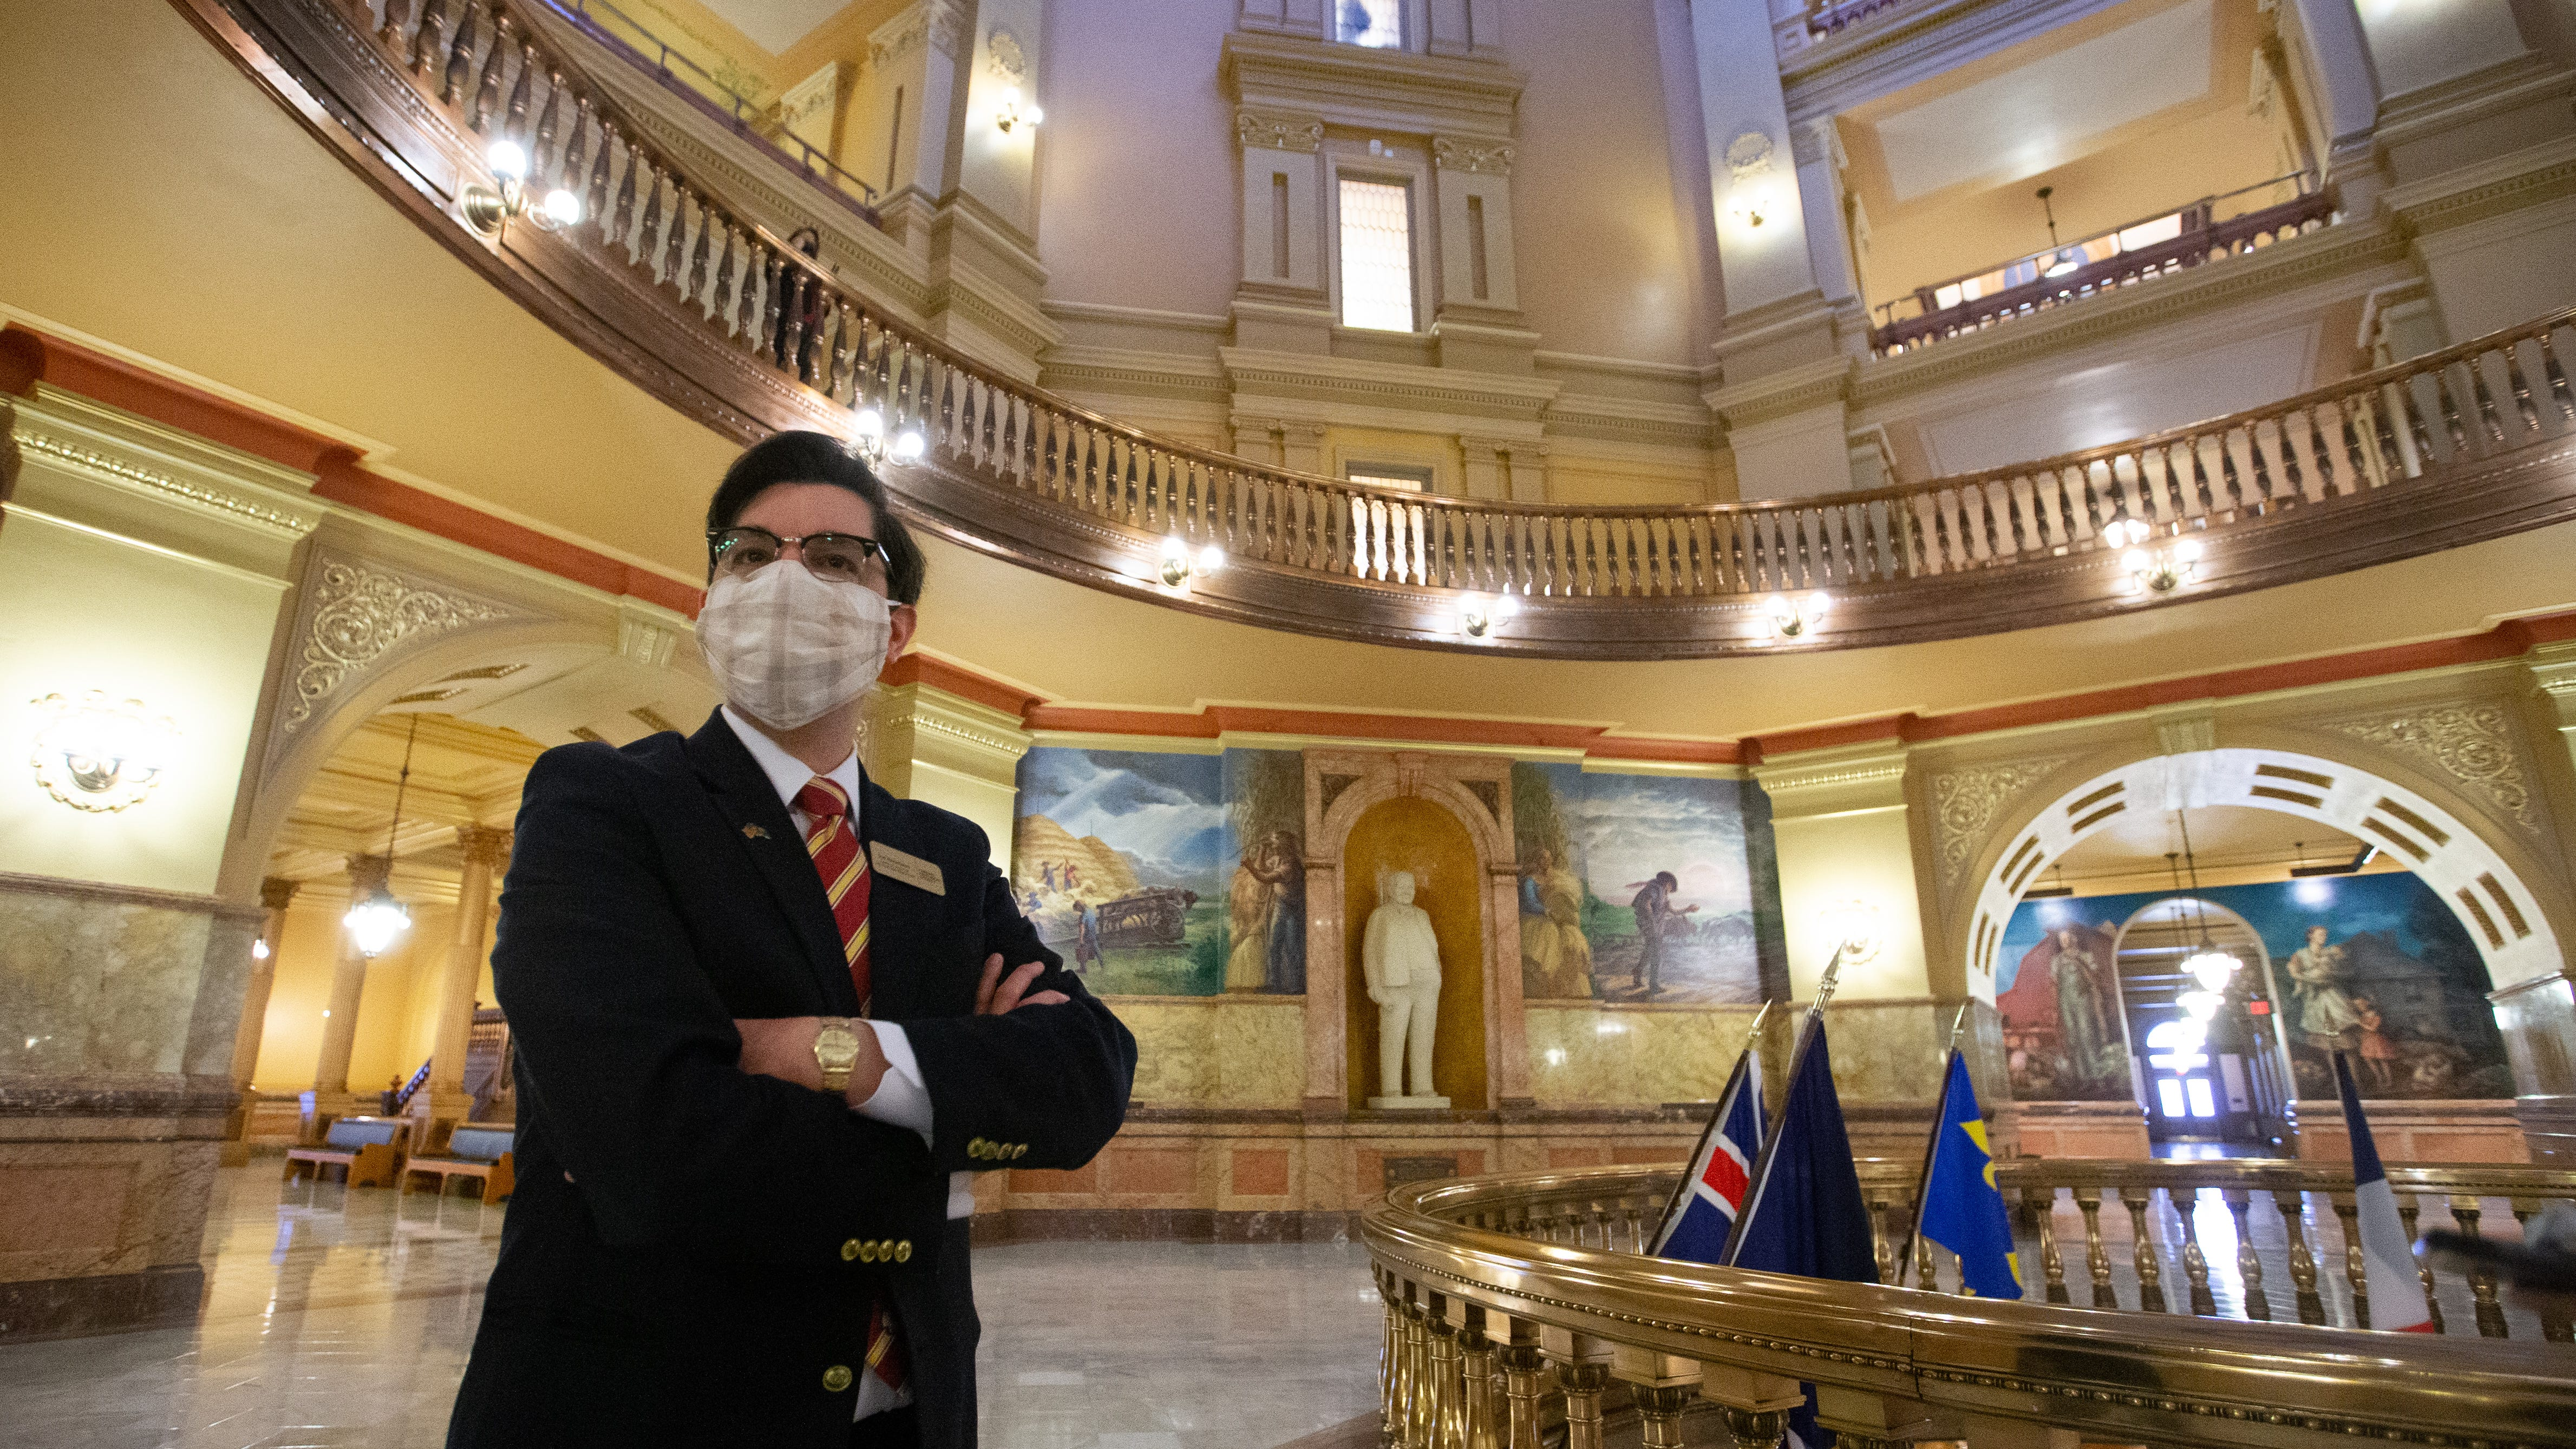 Kansas Statehouse field trips on pause as building closed to public